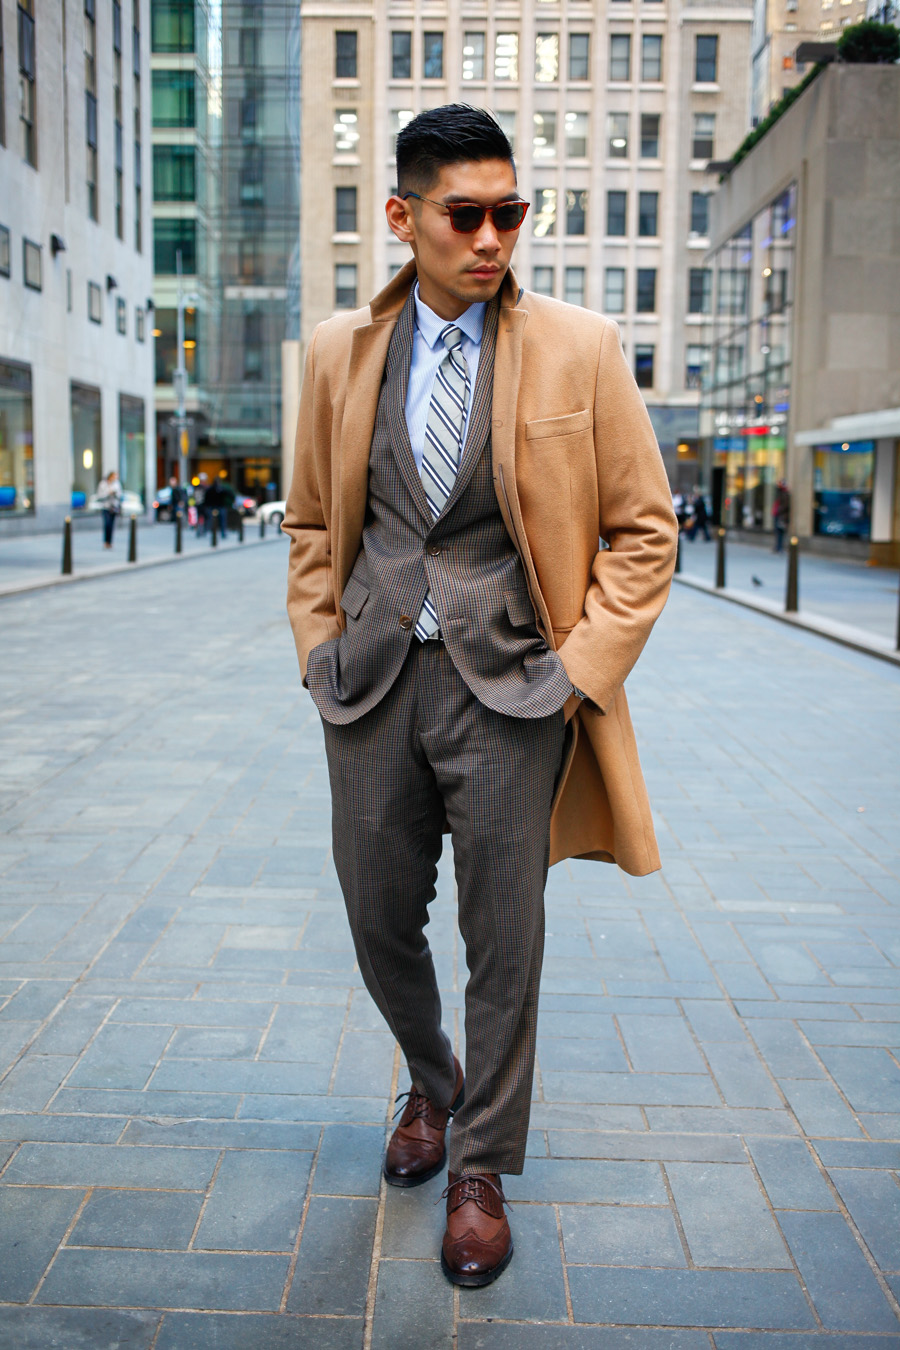 Levitate Style, Bar III, Suit & Tie, Menswear, Olive Three-Piece Suit, Pattern Mixing, Leo Chan